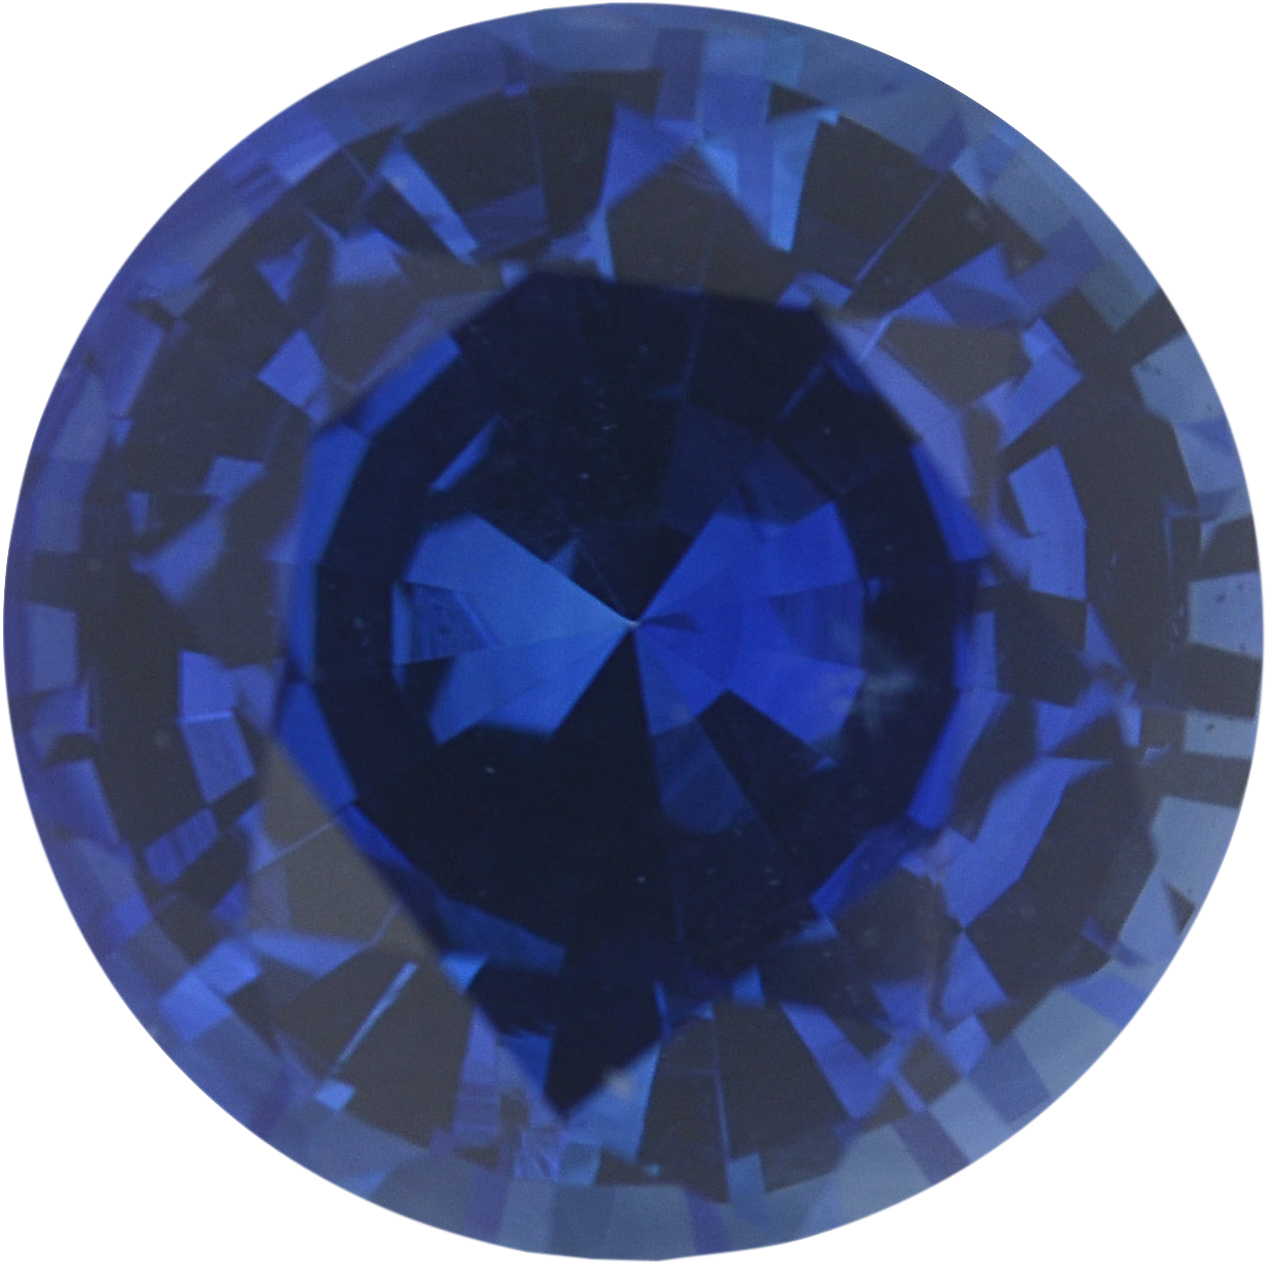 1.09 carats Blue Loose Sapphire Gemstone in Round Cut, 6.29 mm